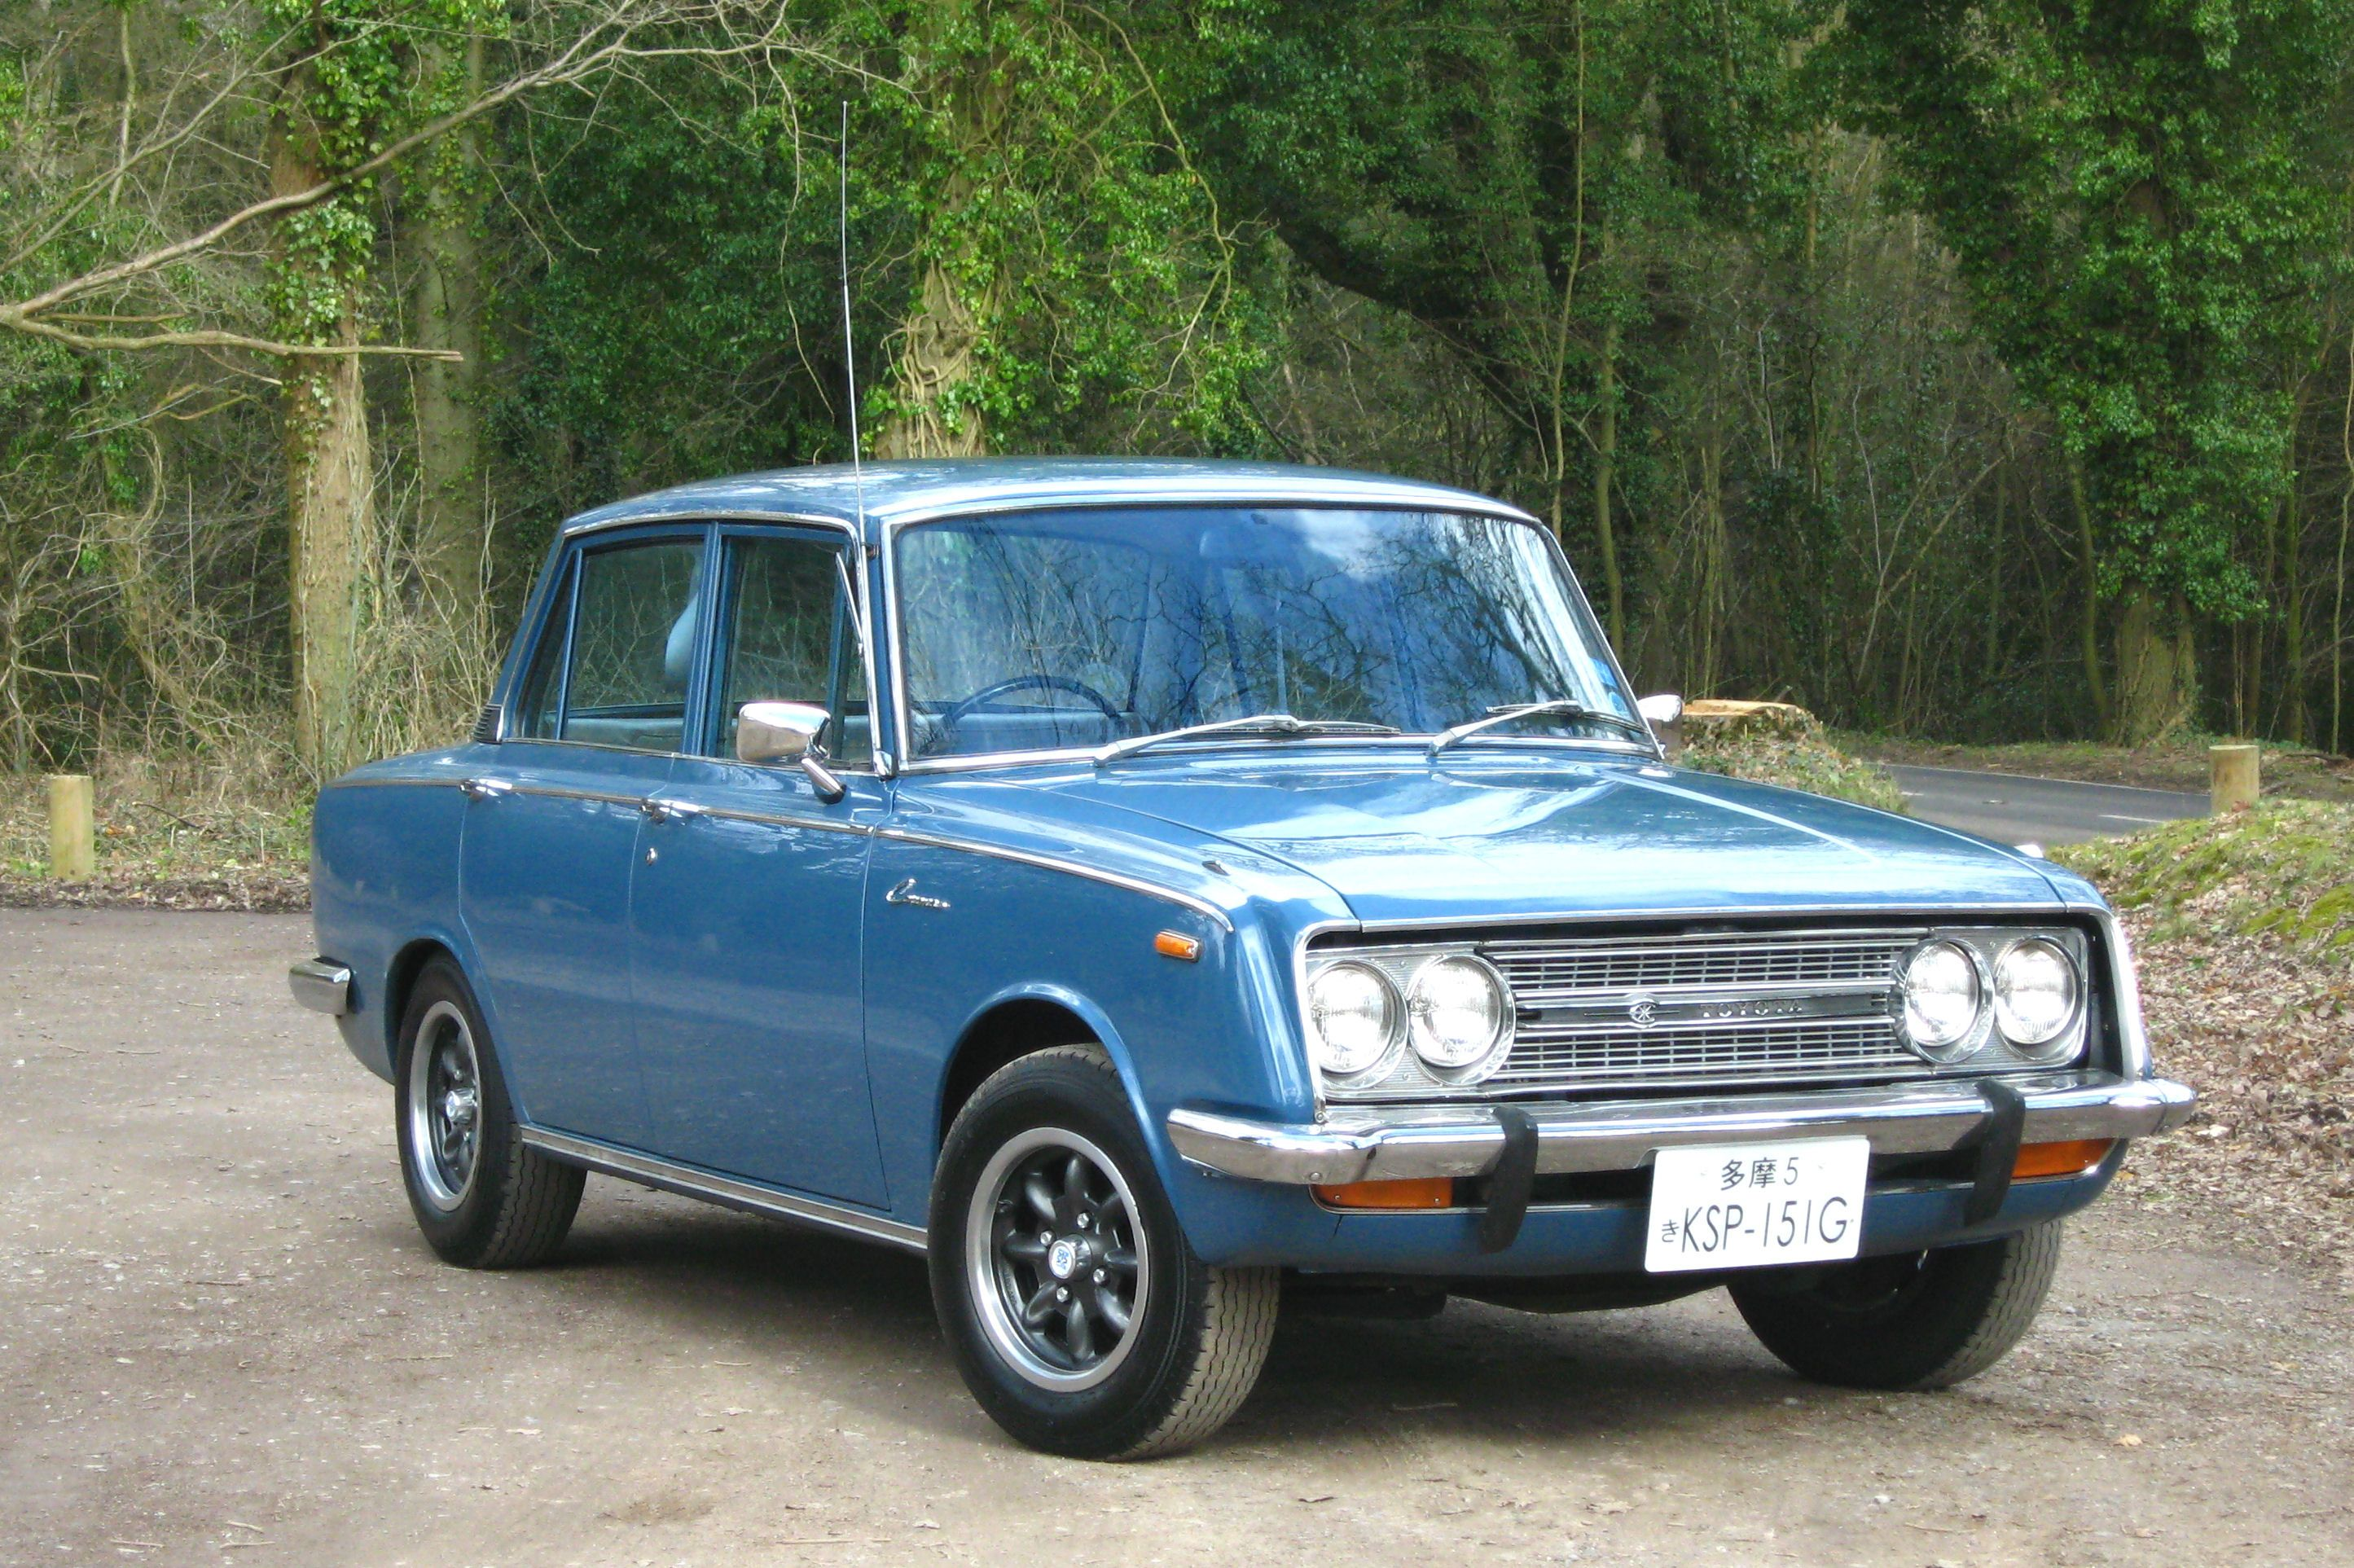 1968 toyota corona google search cars and trucks. Black Bedroom Furniture Sets. Home Design Ideas